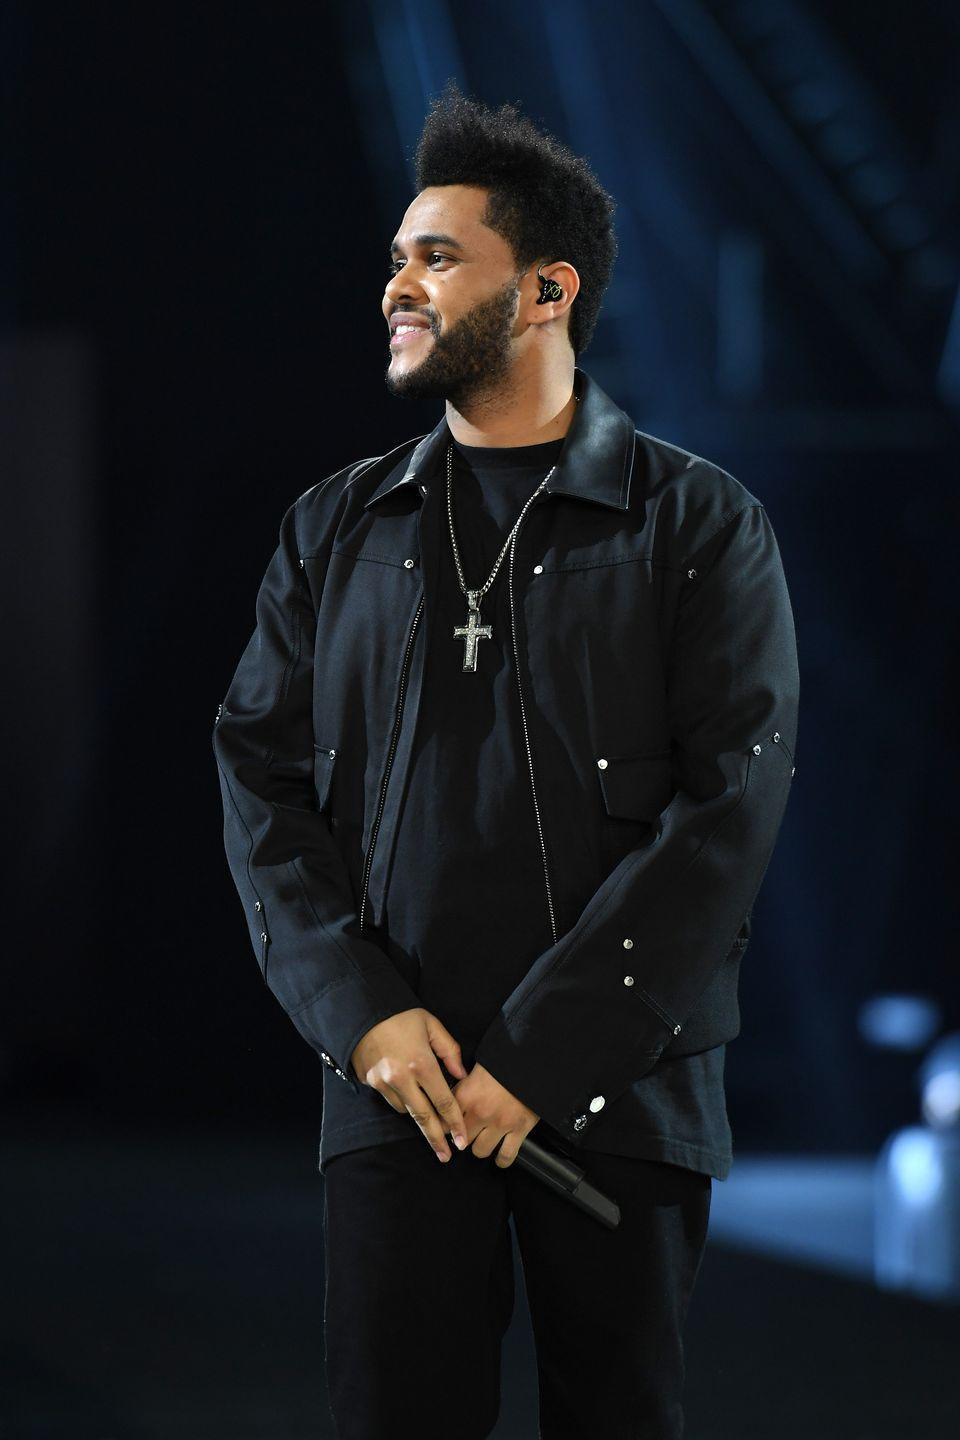 <p>The Weeknd added some volume to his new style, trimming the back of his hair shorter than the front. The result? A pompadour fade. </p>